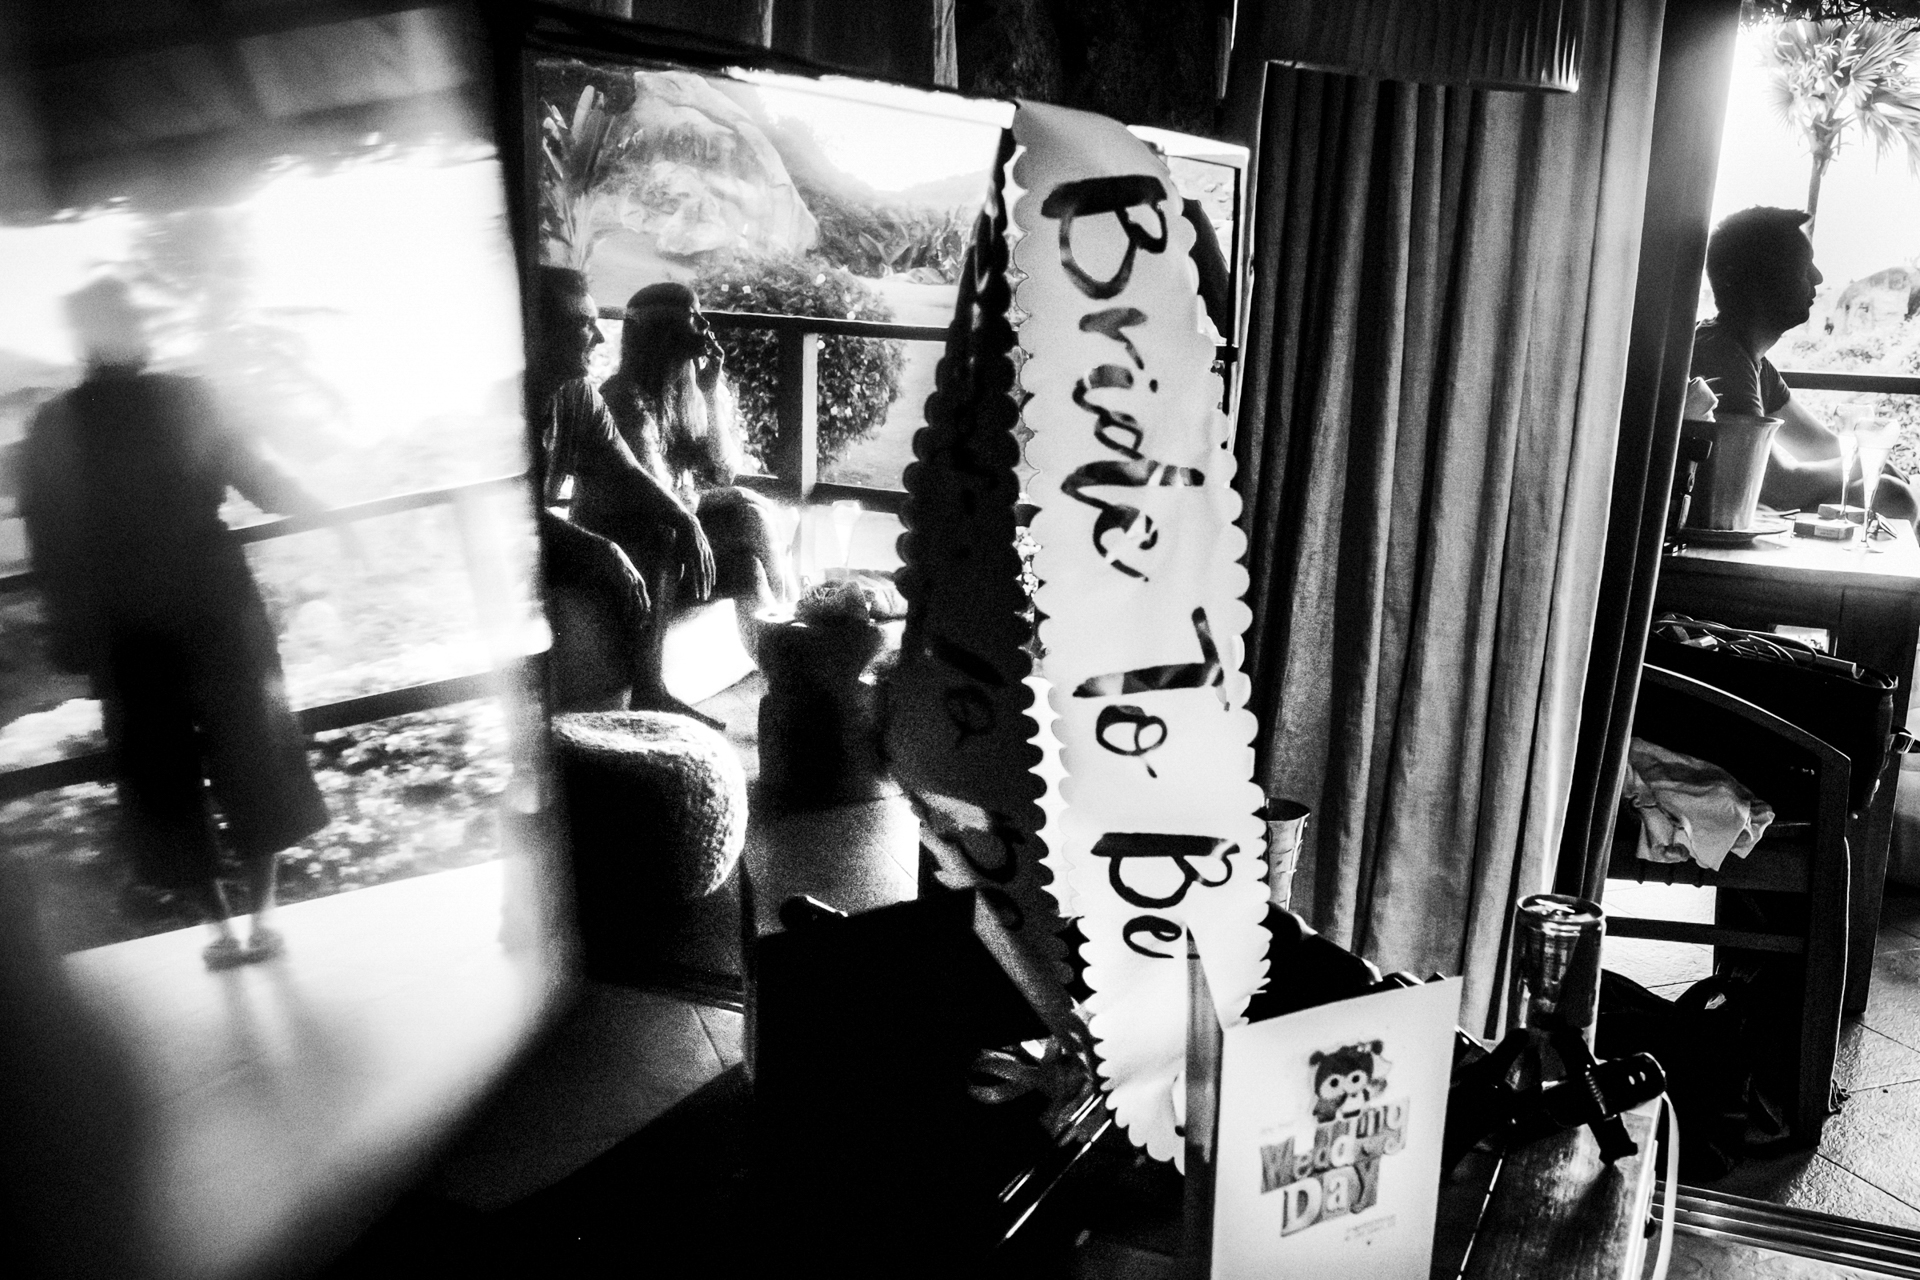 Seychelles Islands Wedding Photo | As they couple eloped, the bride brought some memorabilia with them